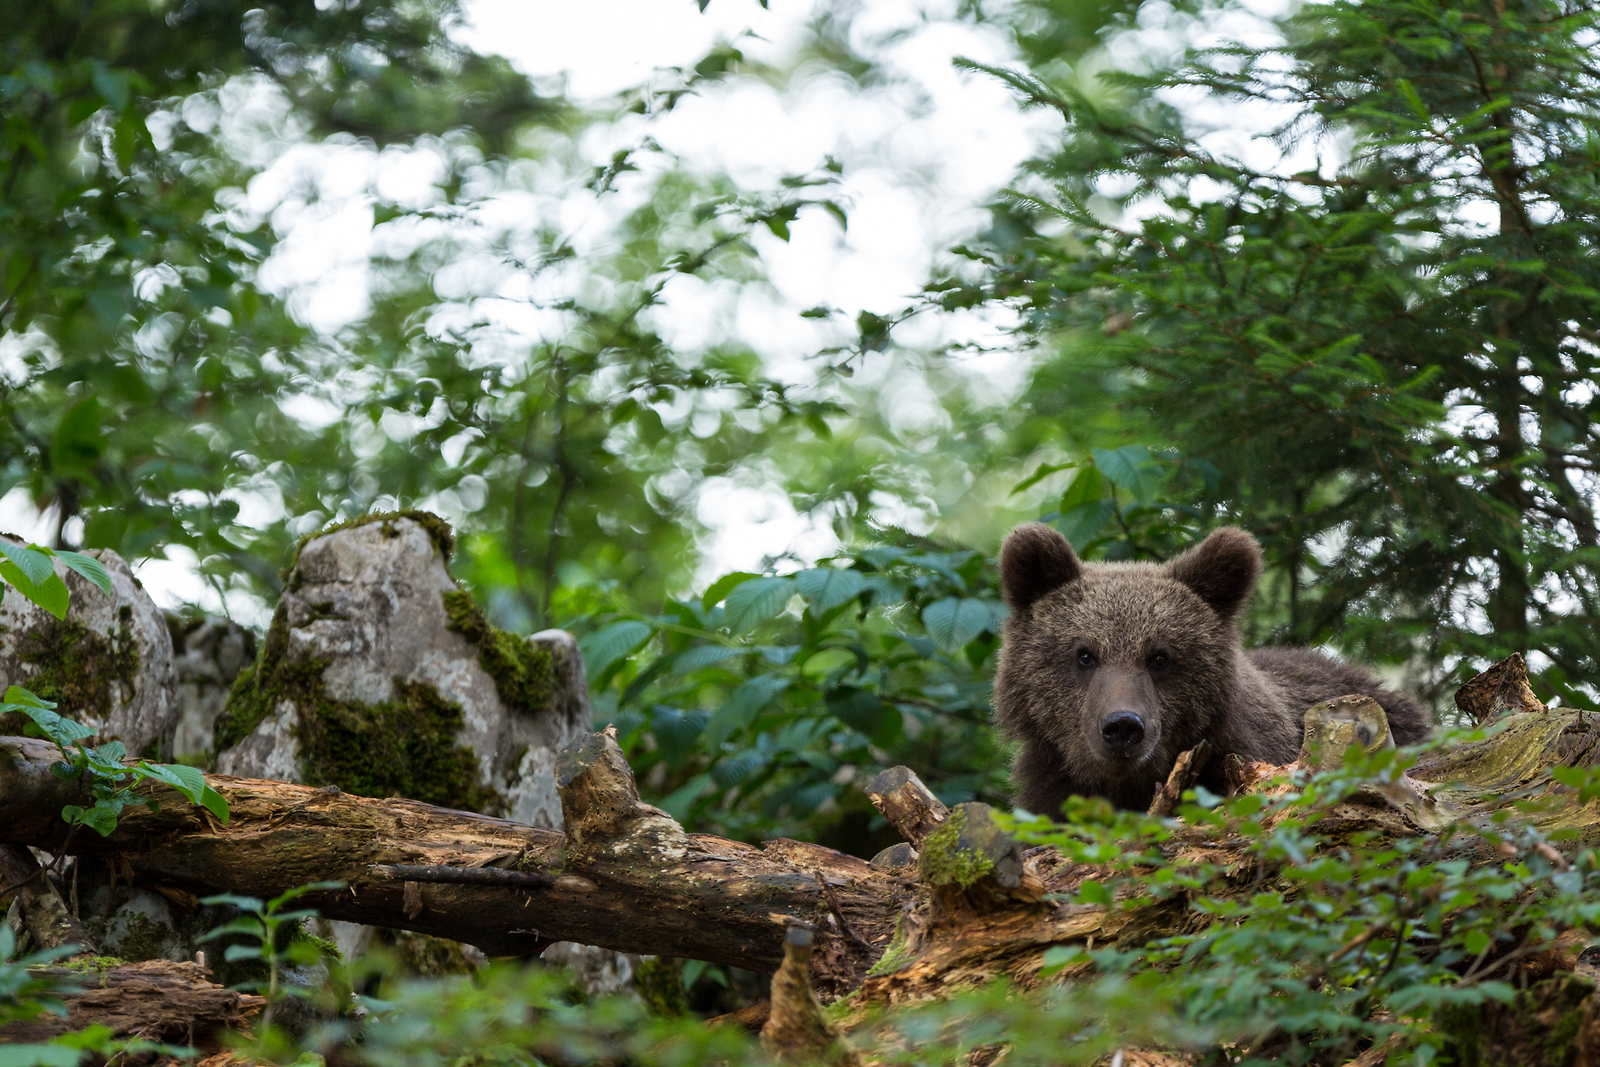 Bear-watching holidays in Slovenia